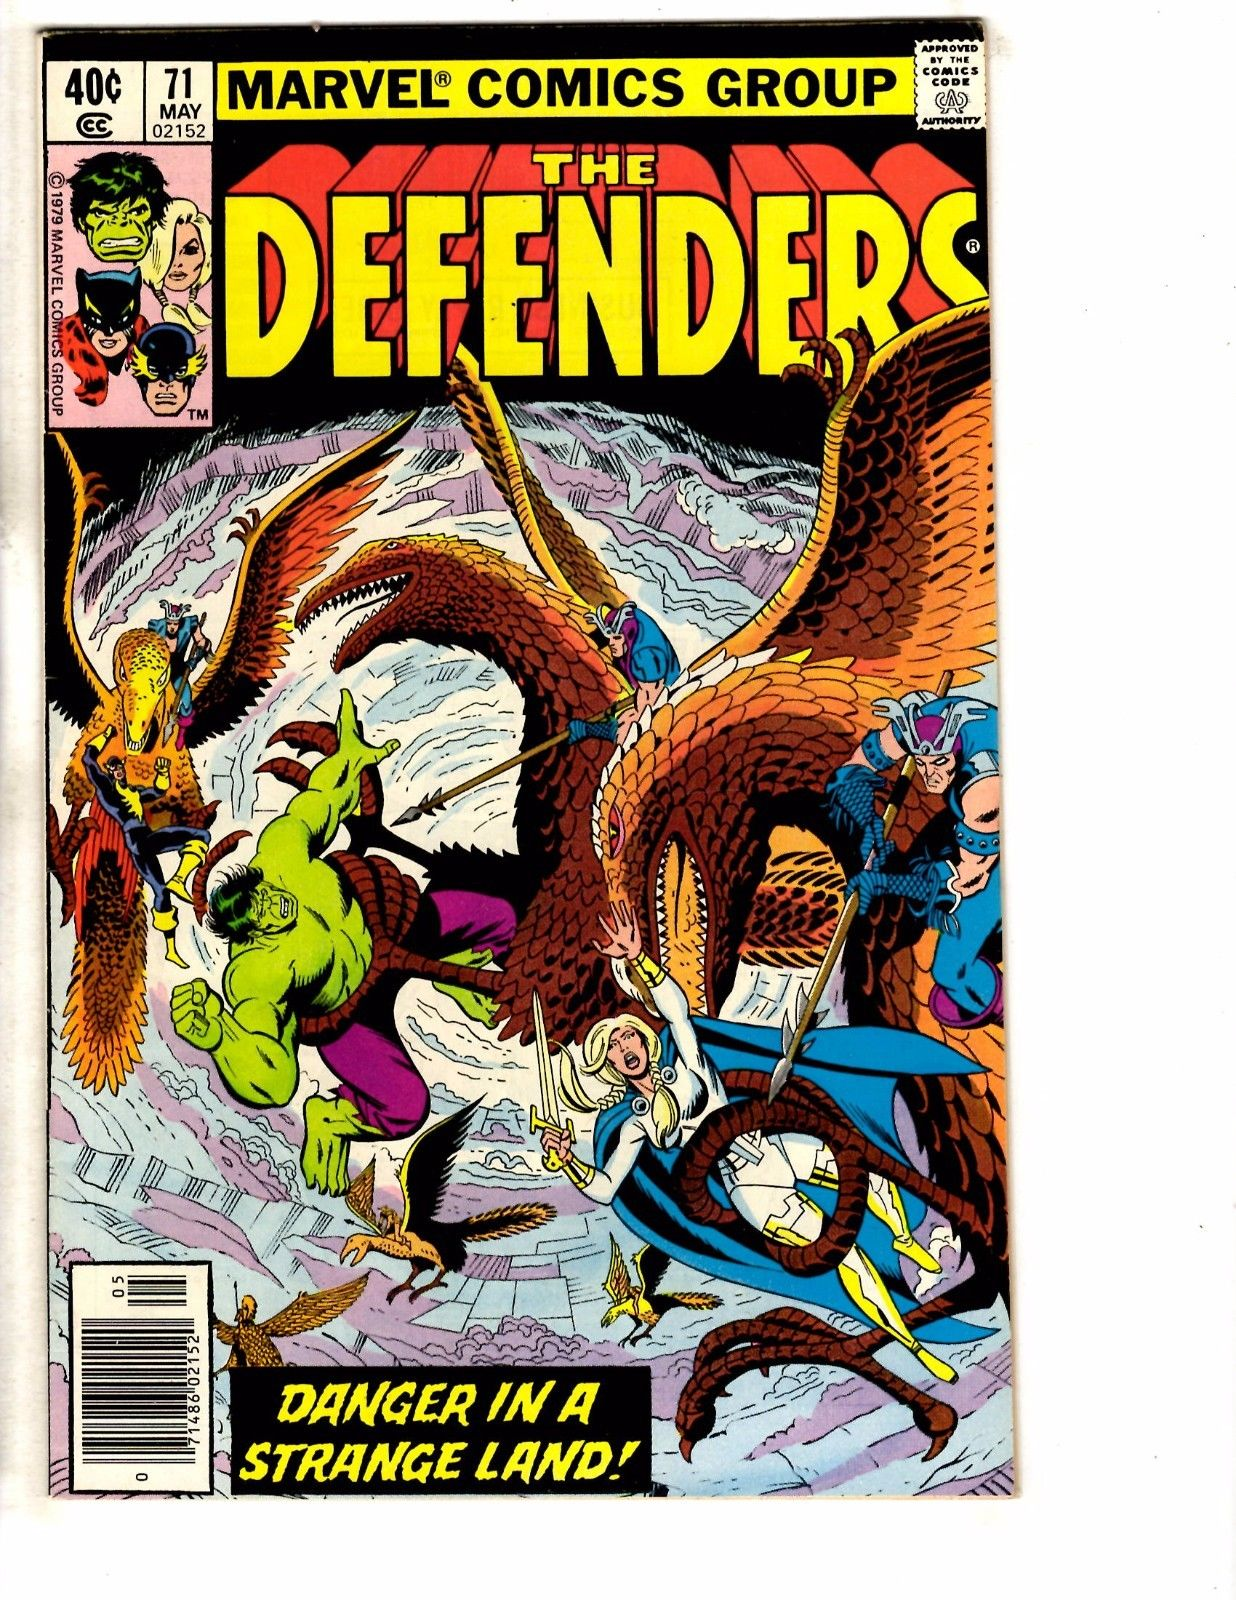 THE DEFENDERS # 72 BRONZE AGE ISSUE MARVEL COMICS HULK